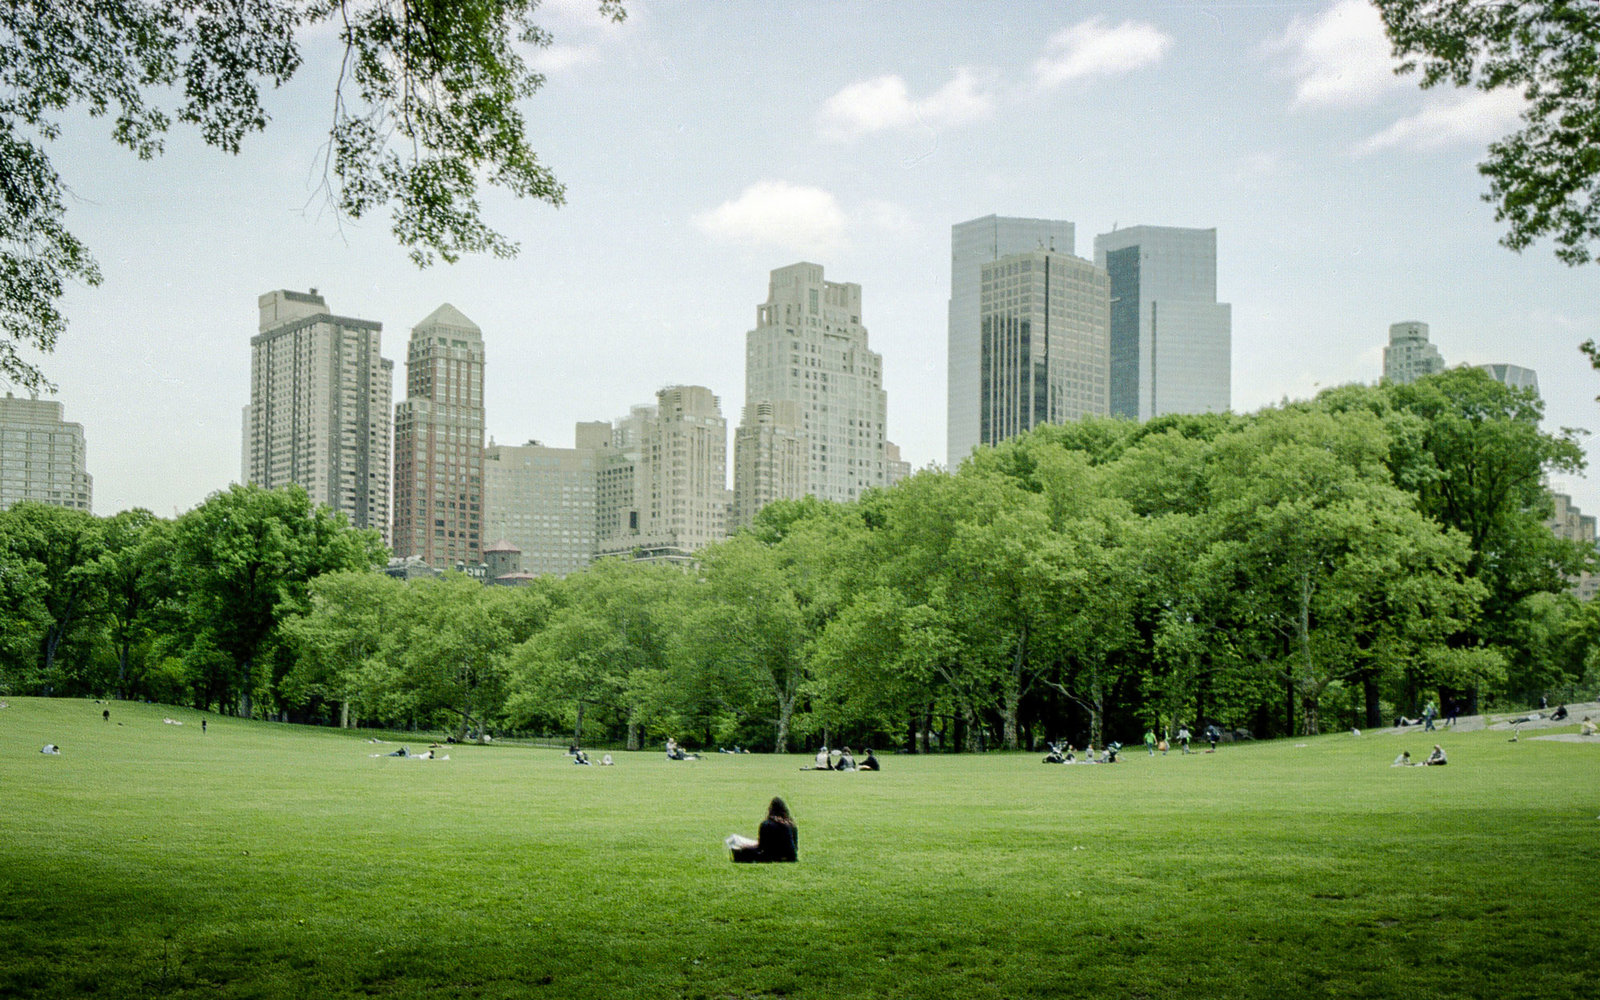 Central Park New York City People Watching